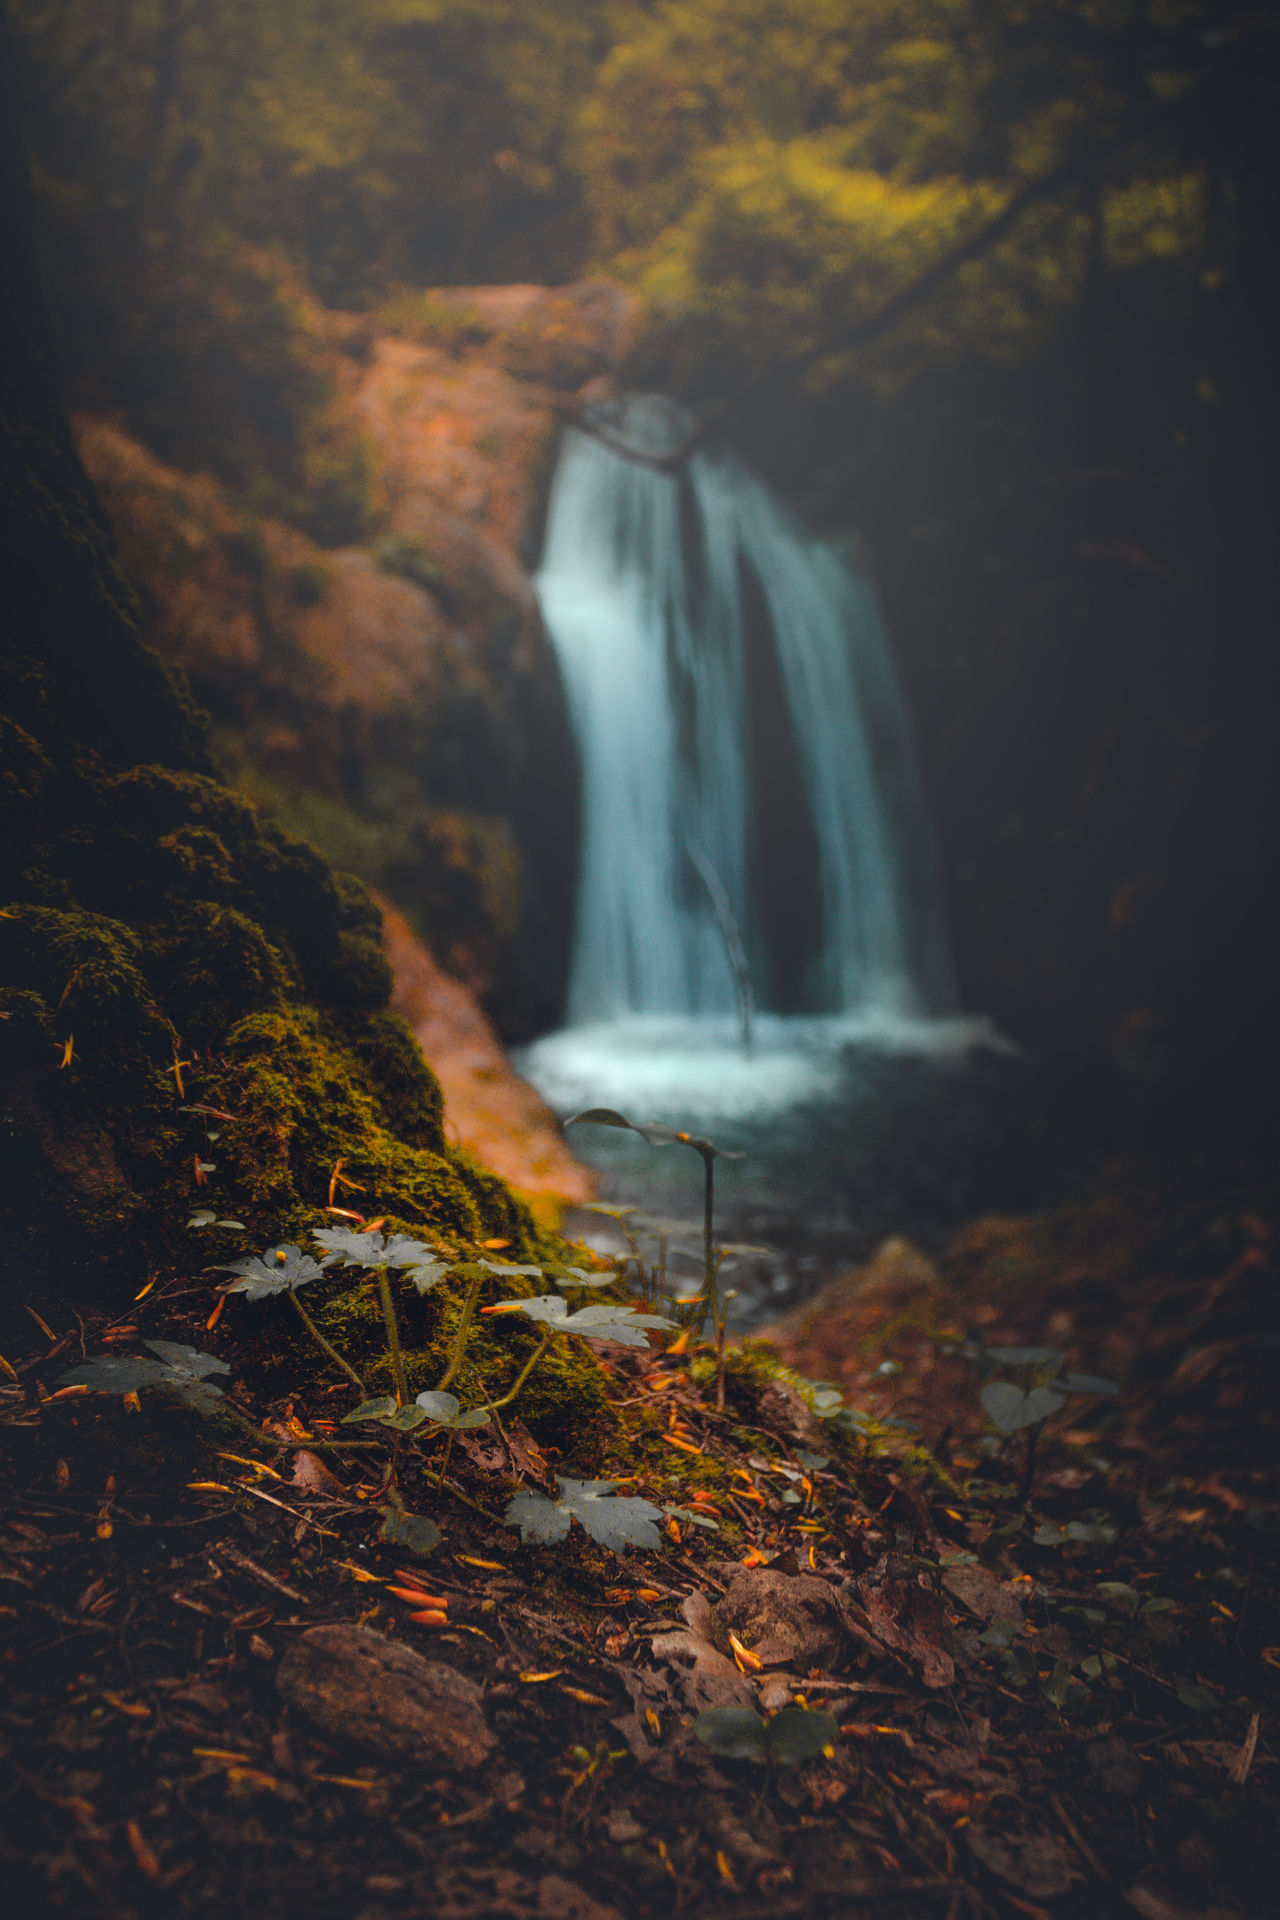 Waterfall Autumn Scenics Leaf Nature Water Long Exposure Beauty In Nature No People Forest Power In Nature Outdoors Day Eye4photography  River Environment Freshness ColorfulPlant Dreamy EyeEm Best Shots EyeEm Travel Eye4photography  Growth The Great Outdoors - 2017 EyeEm Awards